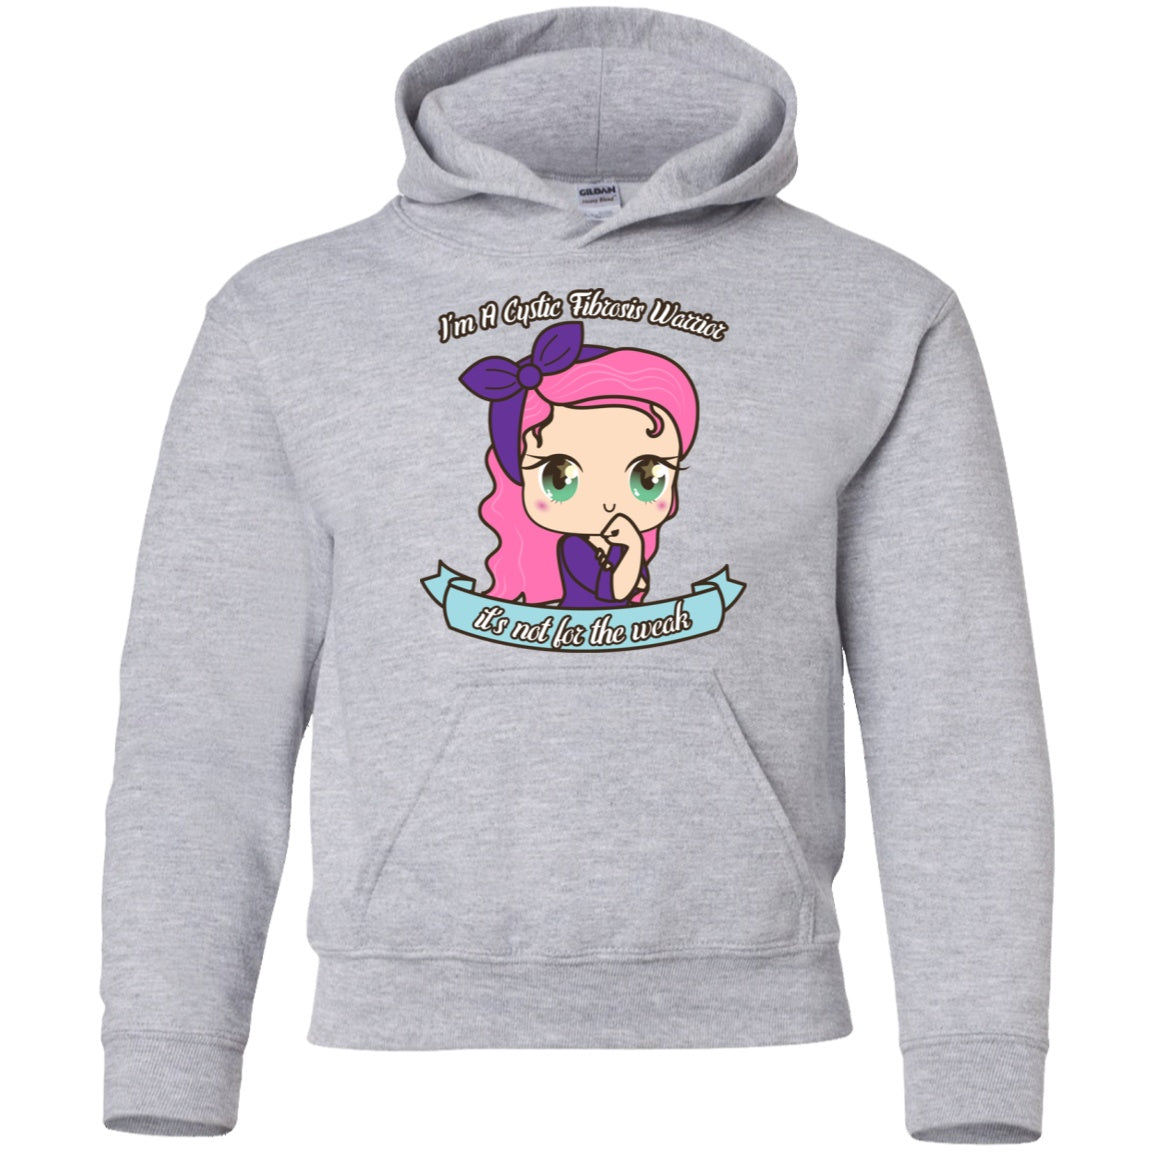 Cute Cystic Fibrosis Warrior Youth Pullover Hoodie